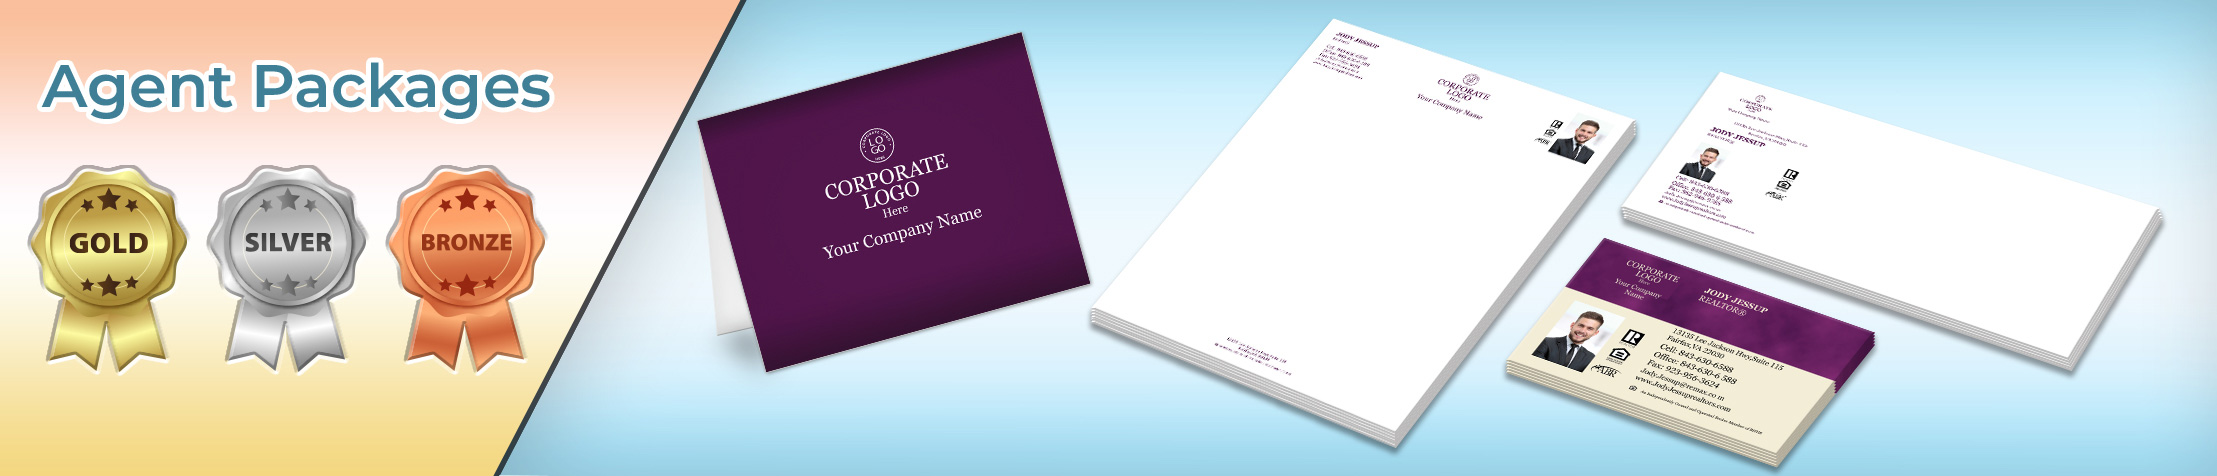 Berkshire Hathaway Real Estate Gold, Silver and Bronze Agent Packages - Berkshire Hathaway personalized business cards, letterhead, envelopes and note cards | BestPrintBuy.com